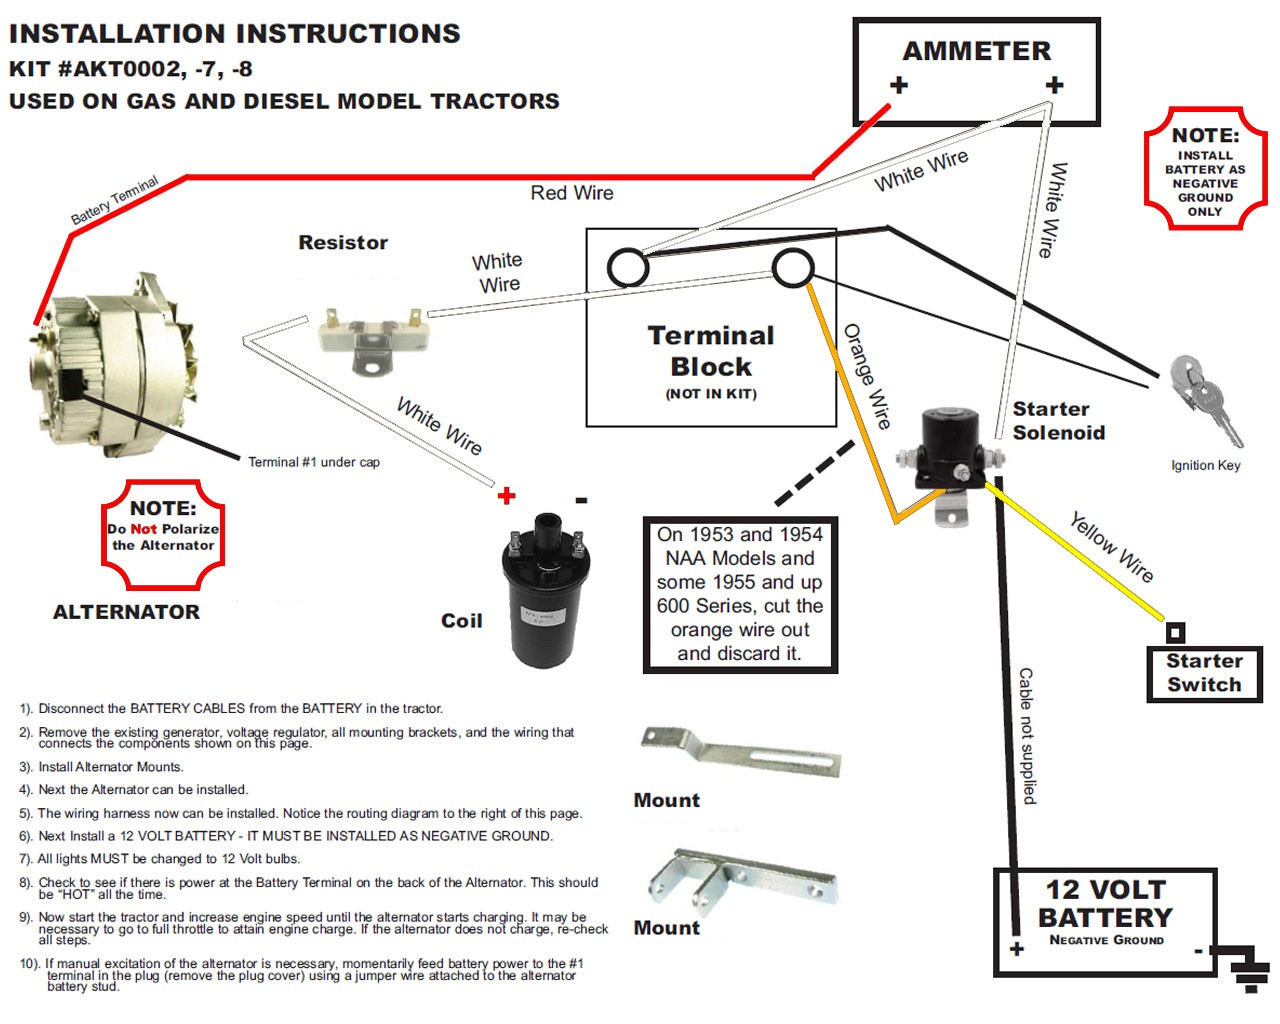 DIAGRAM] Wiring Diagrams Ford 640 6 Volt Tractor FULL Version HD Quality  Volt Tractor - 1HOAWIRING1.LALIBRAIRIEDELOUVIERS.FR1hoawiring1.lalibrairiedelouviers.fr